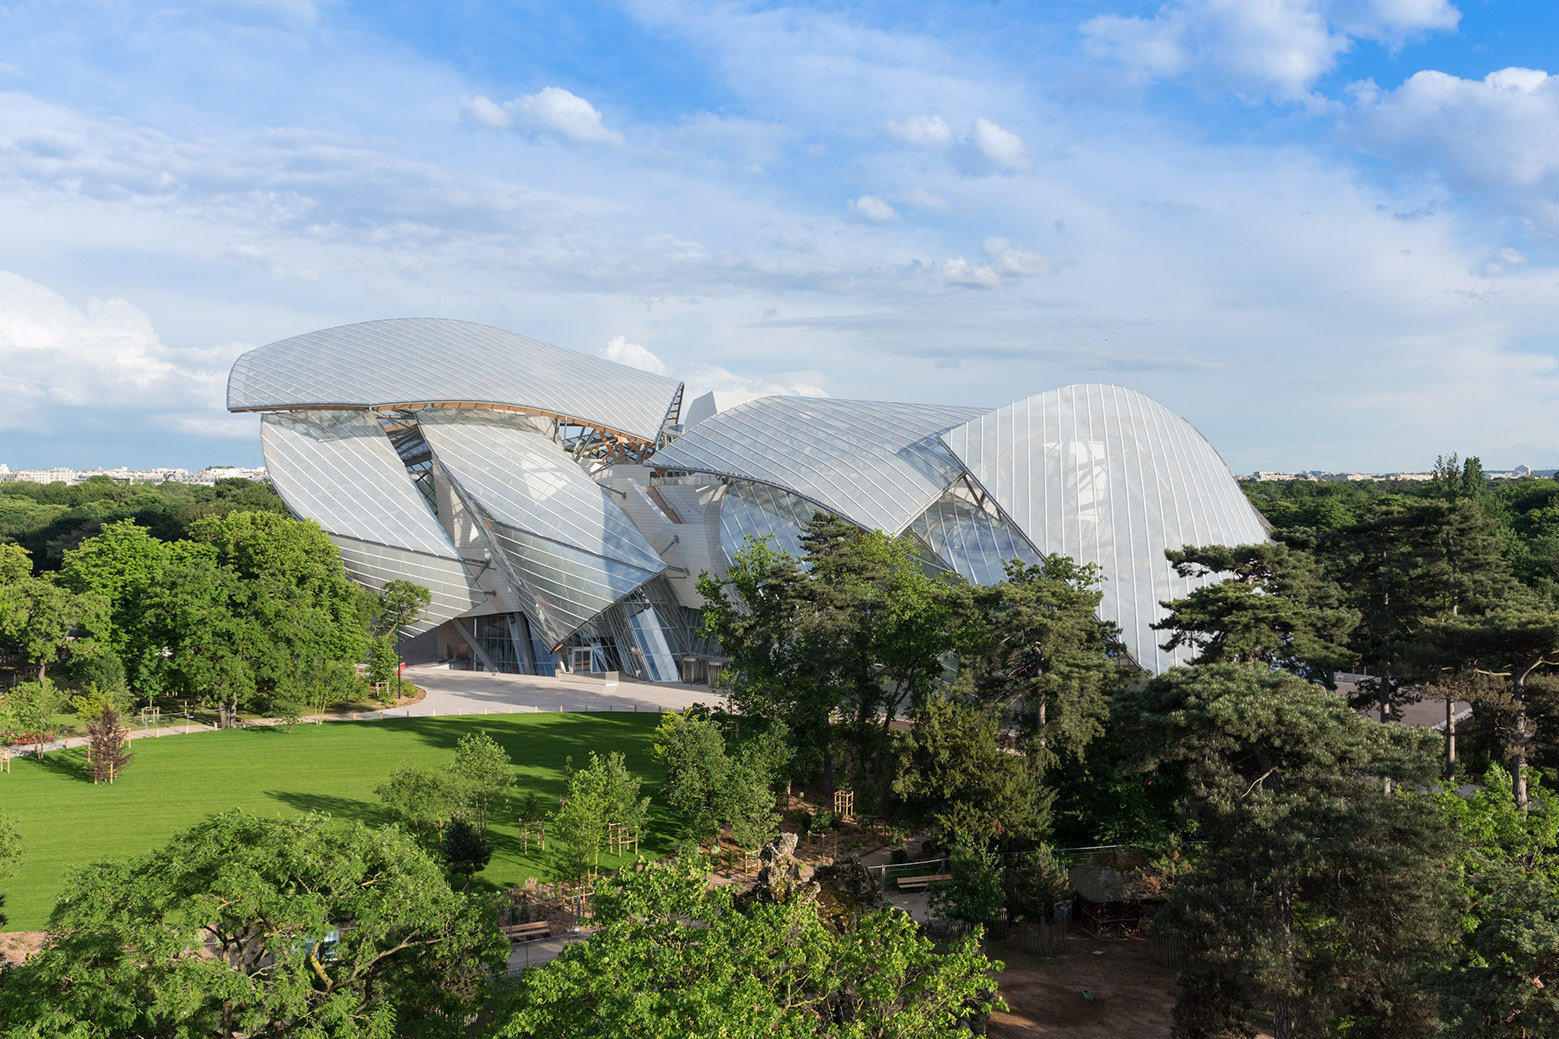 Fondation Louis Vuitton, Paris. Image © Iwan Baan